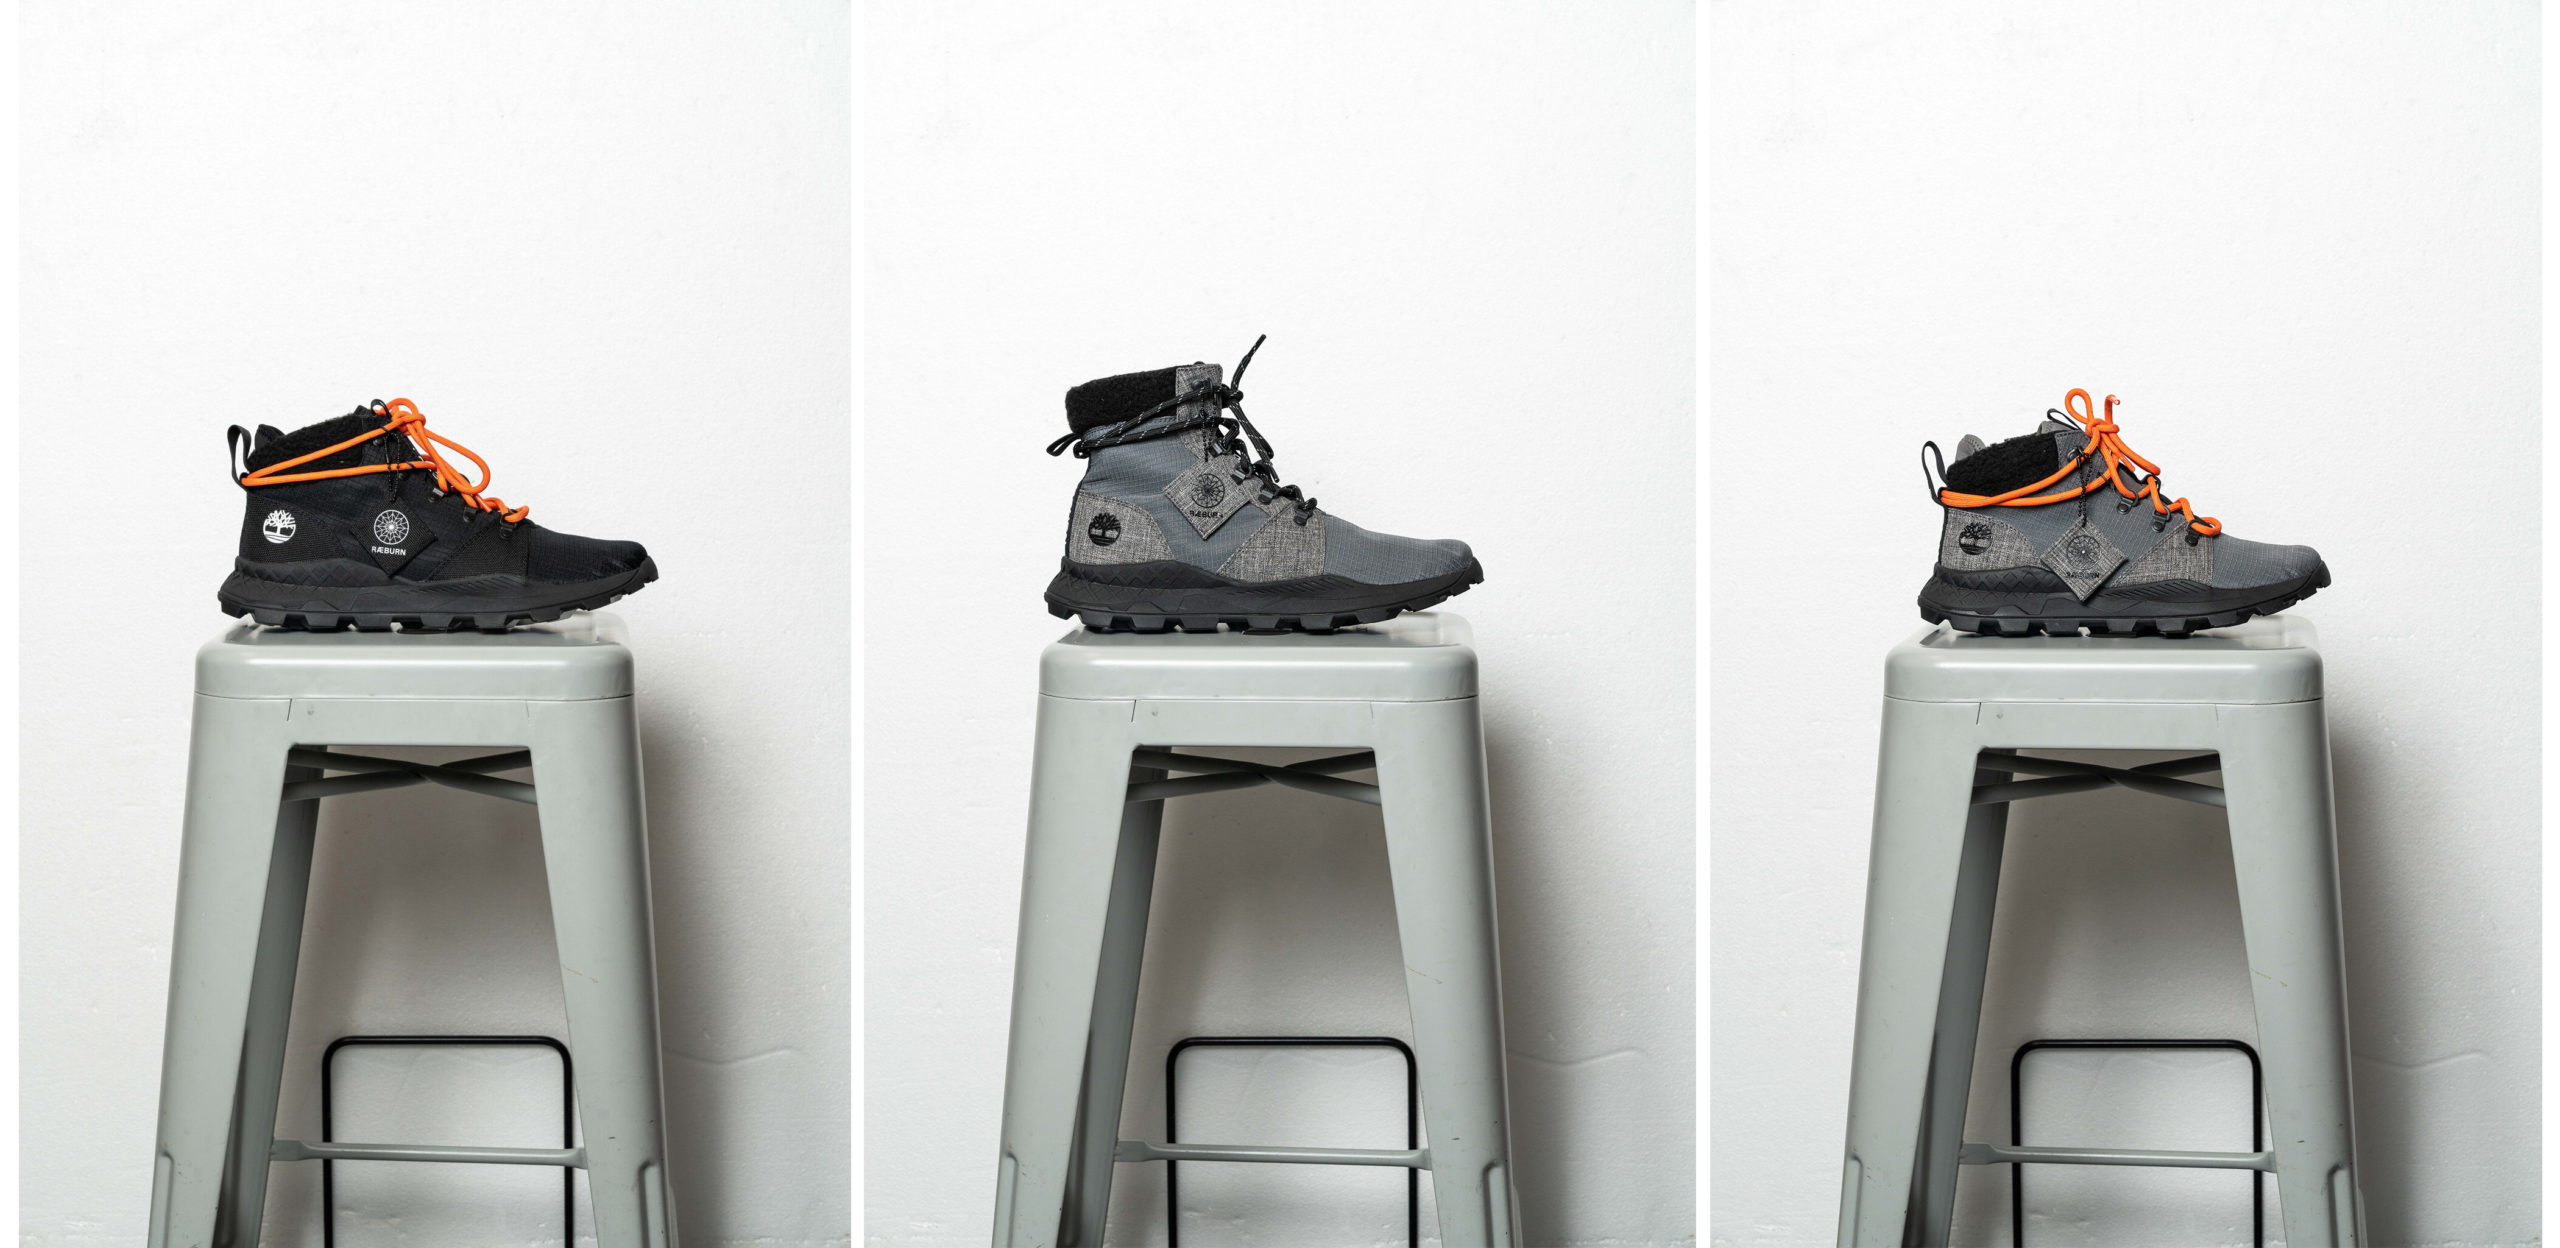 Timberland x Raeburn collaboration sustainability